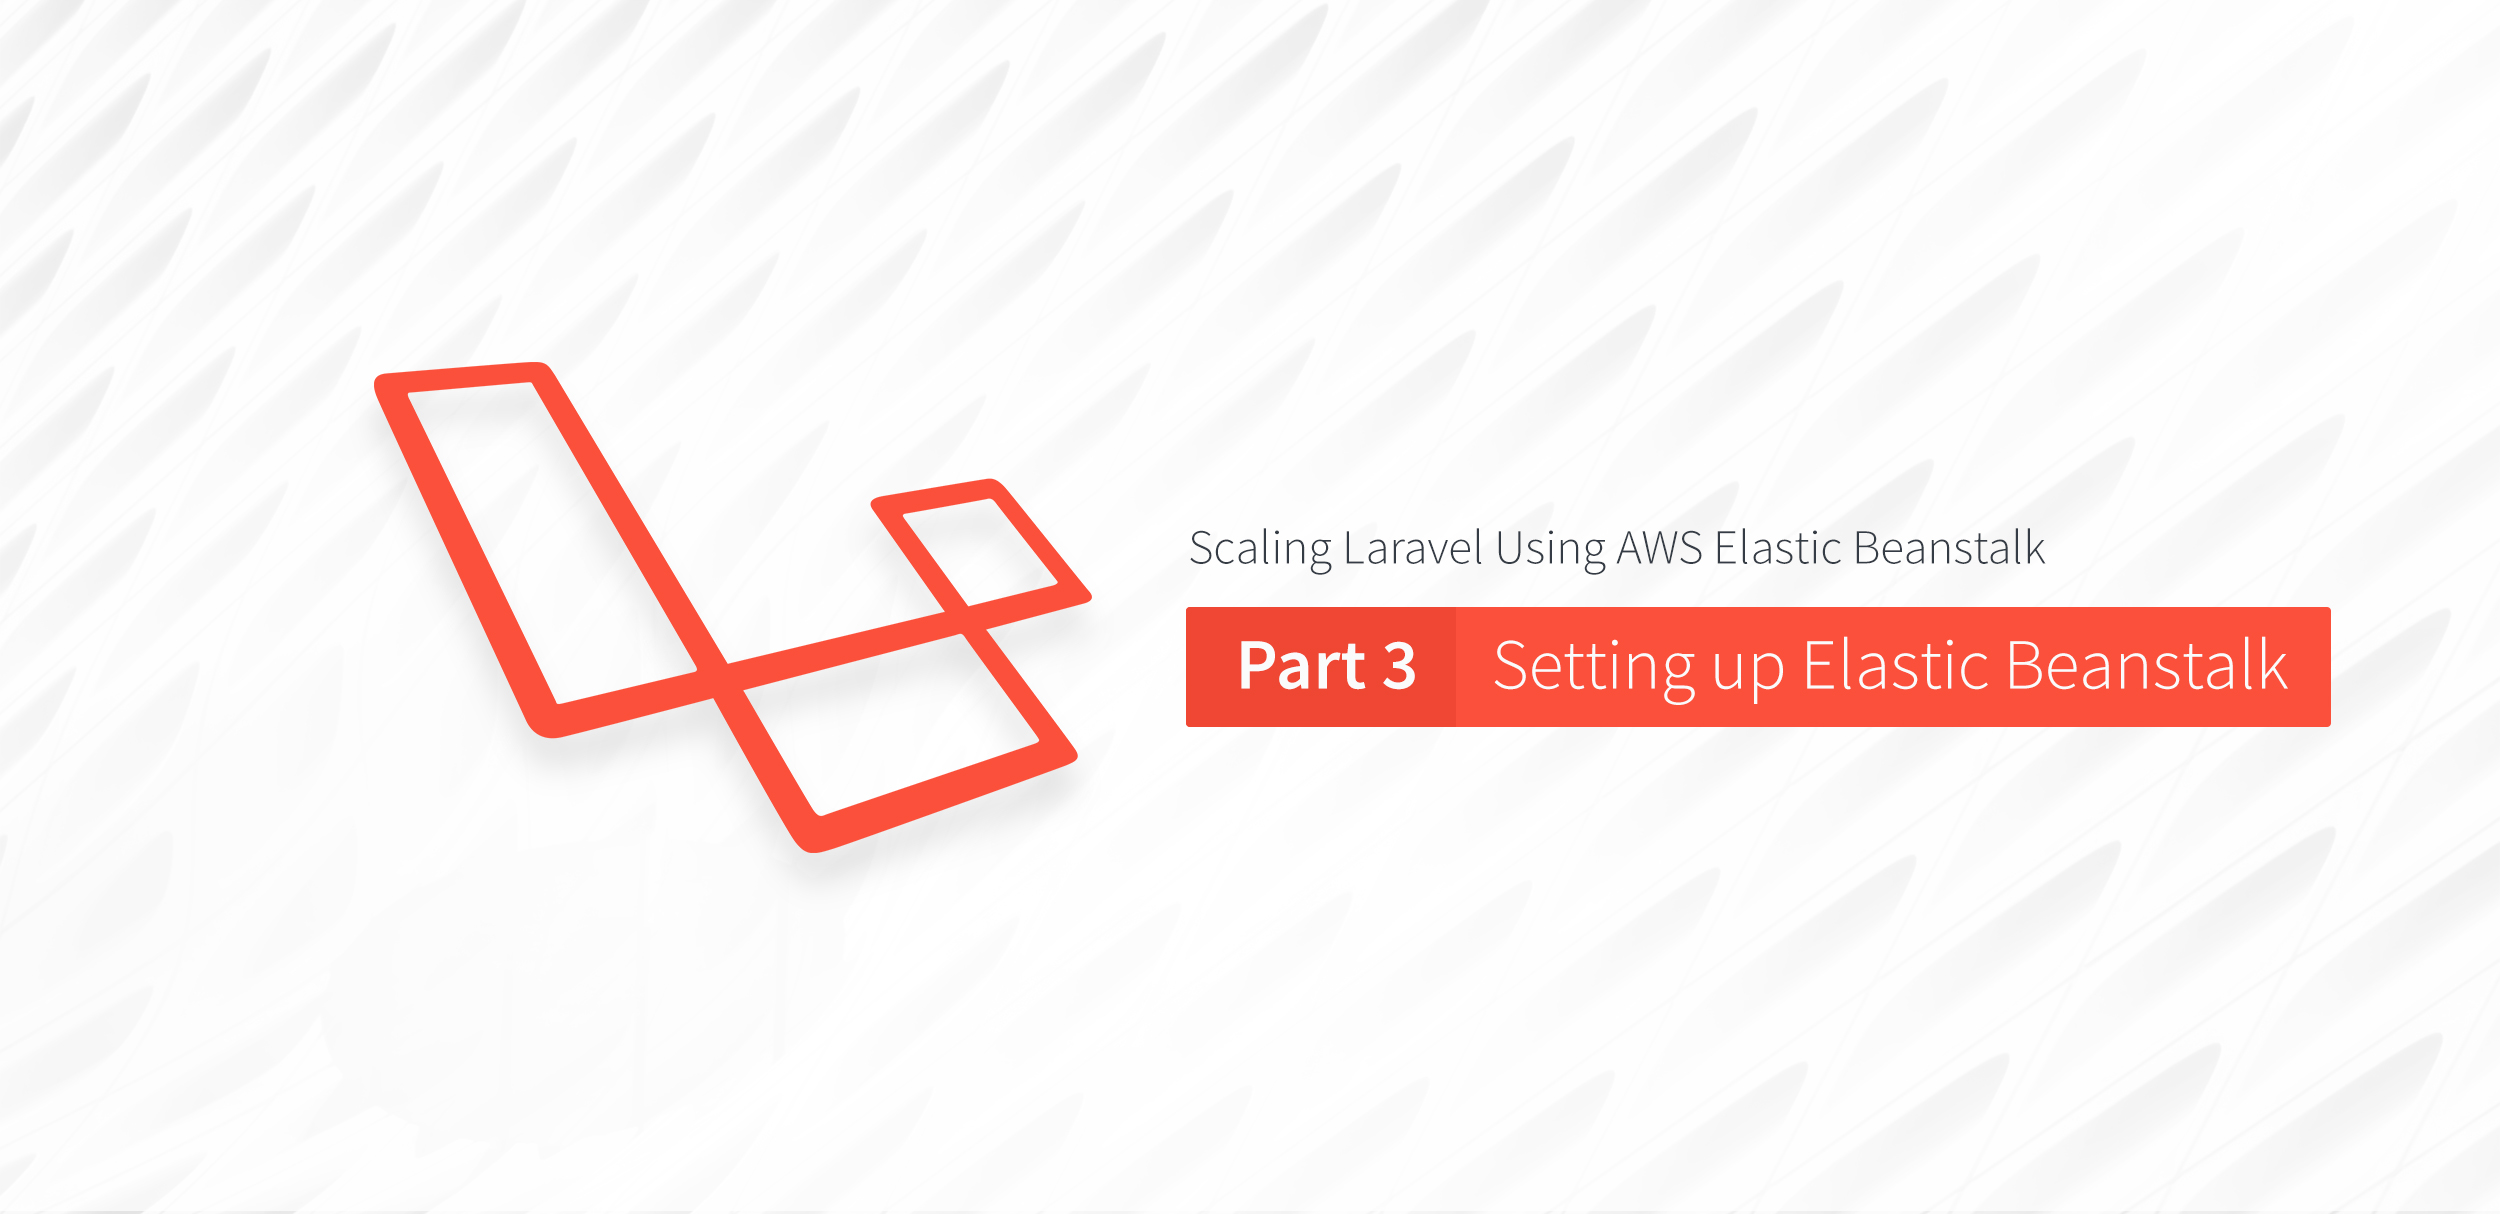 Scaling Laravel Using AWS Elastic Beanstalk Part 3: Setting